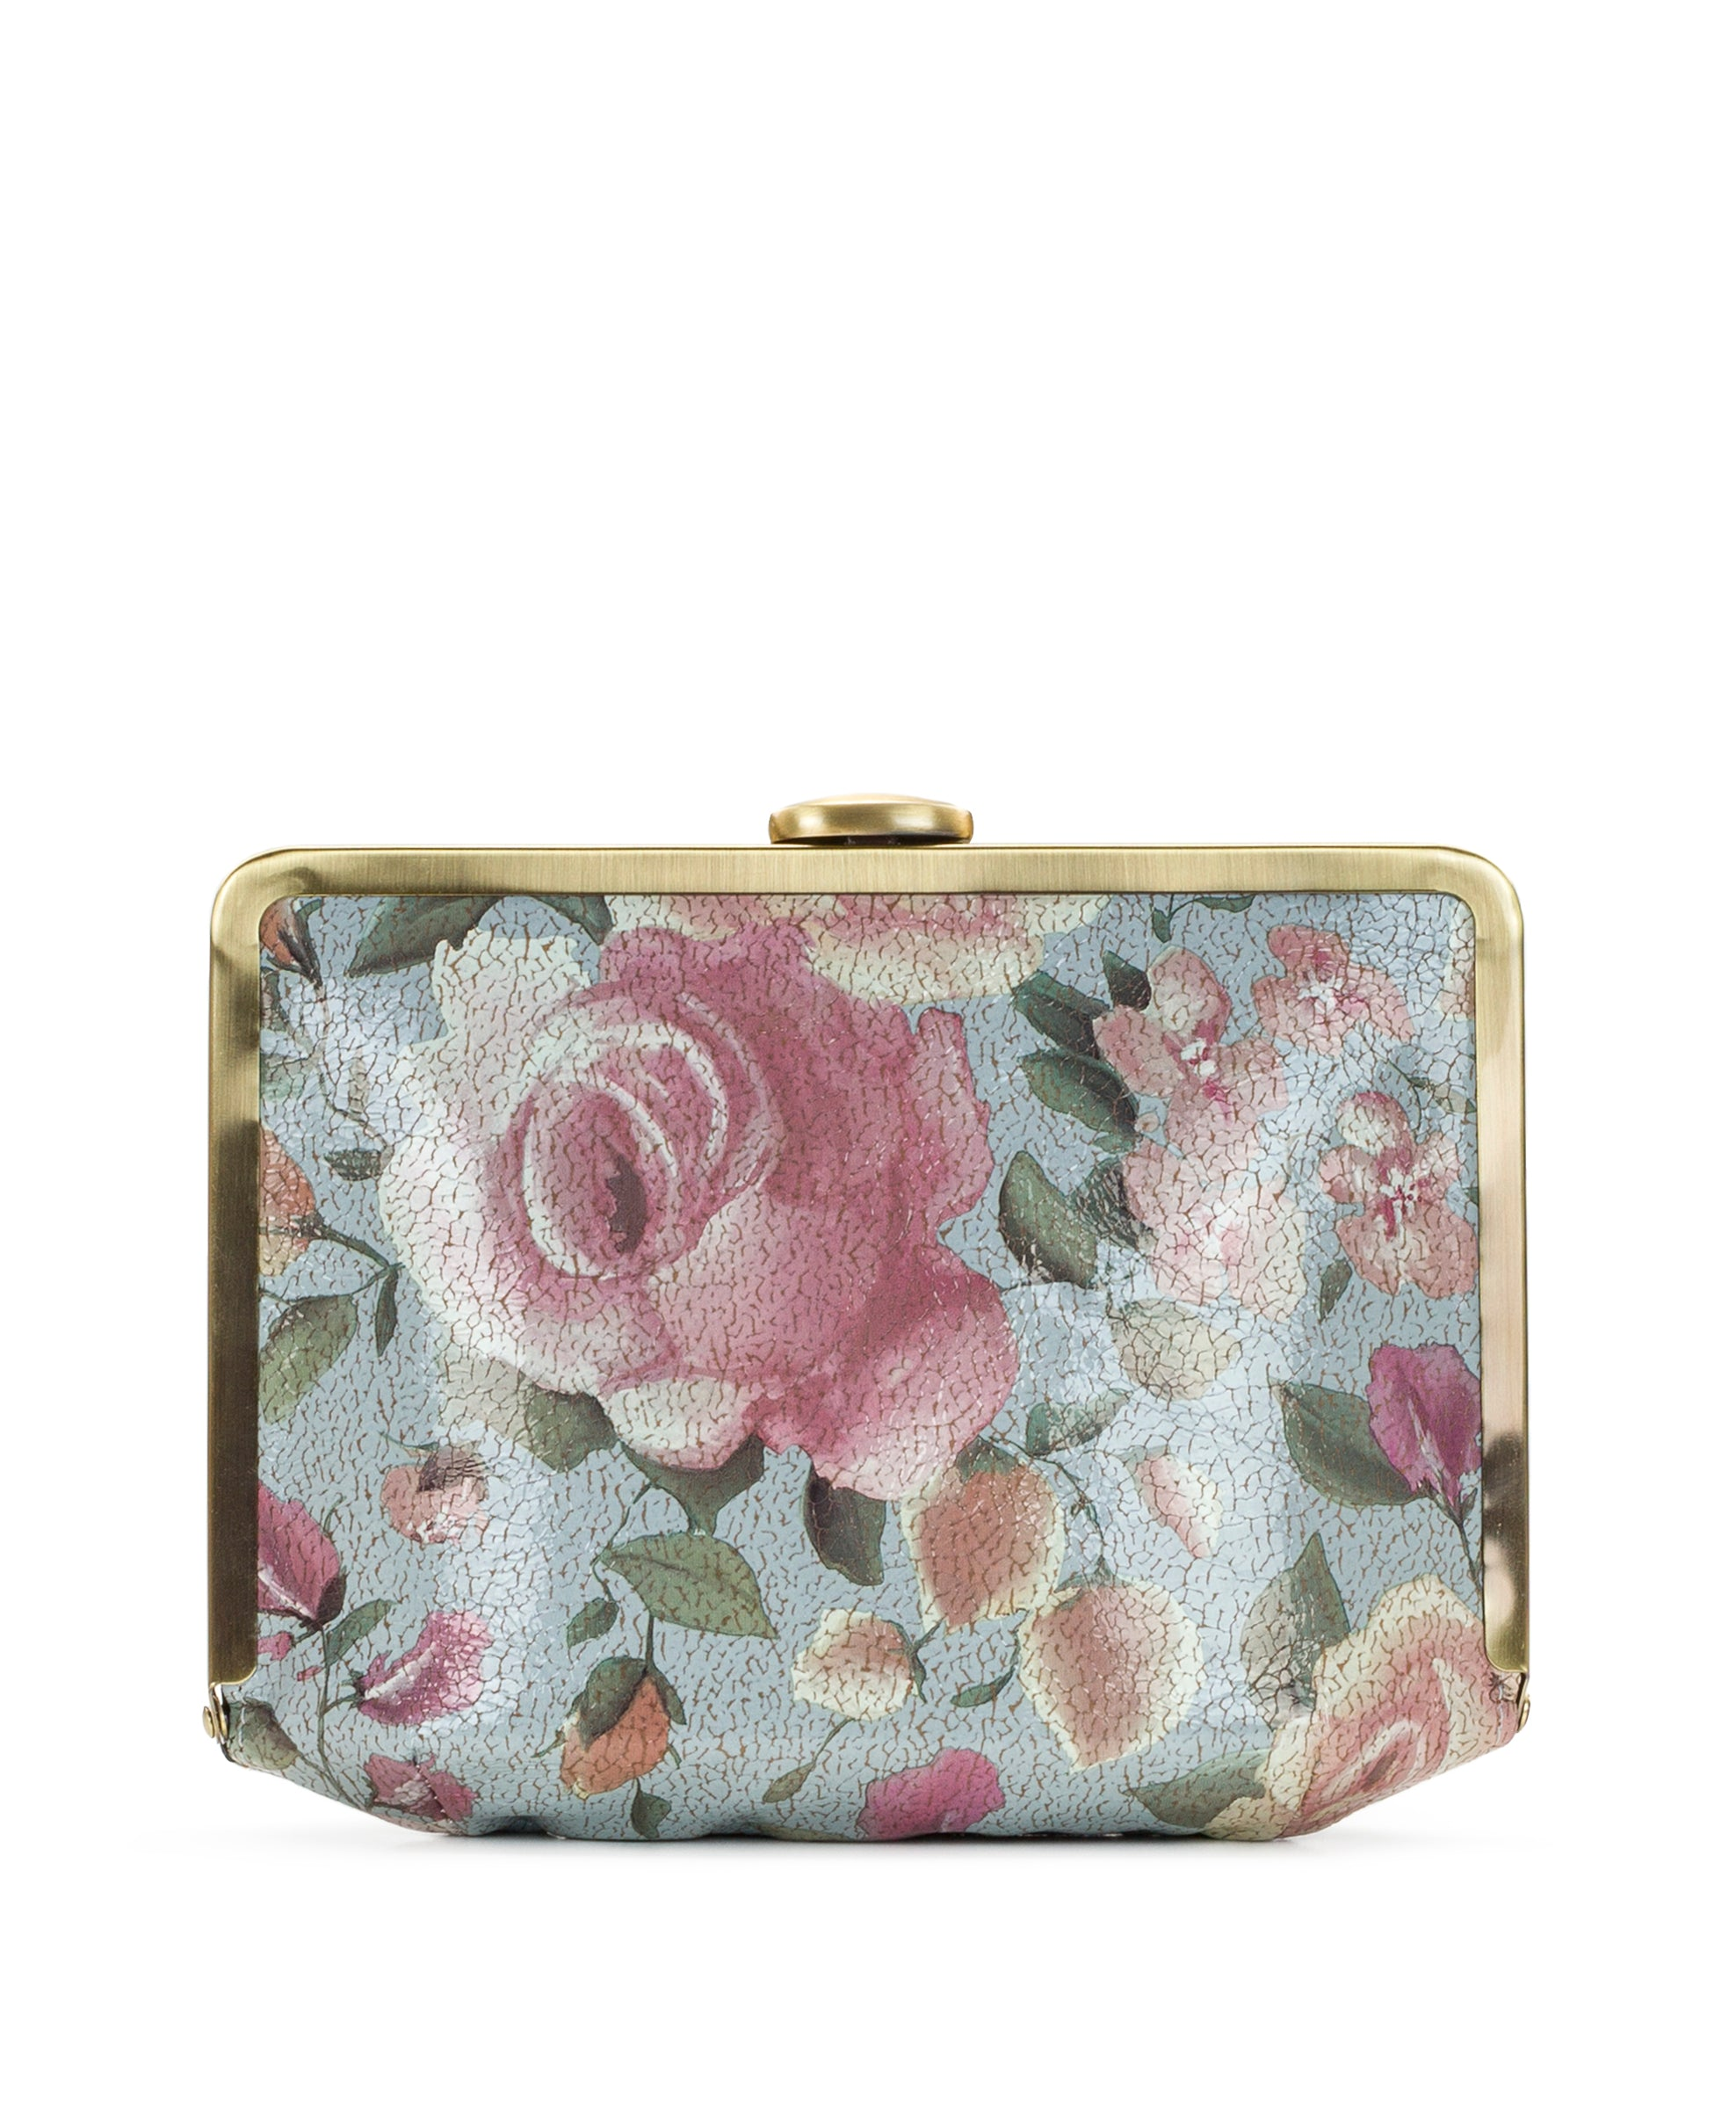 Cariati Metal Clutch - Crackled Rose